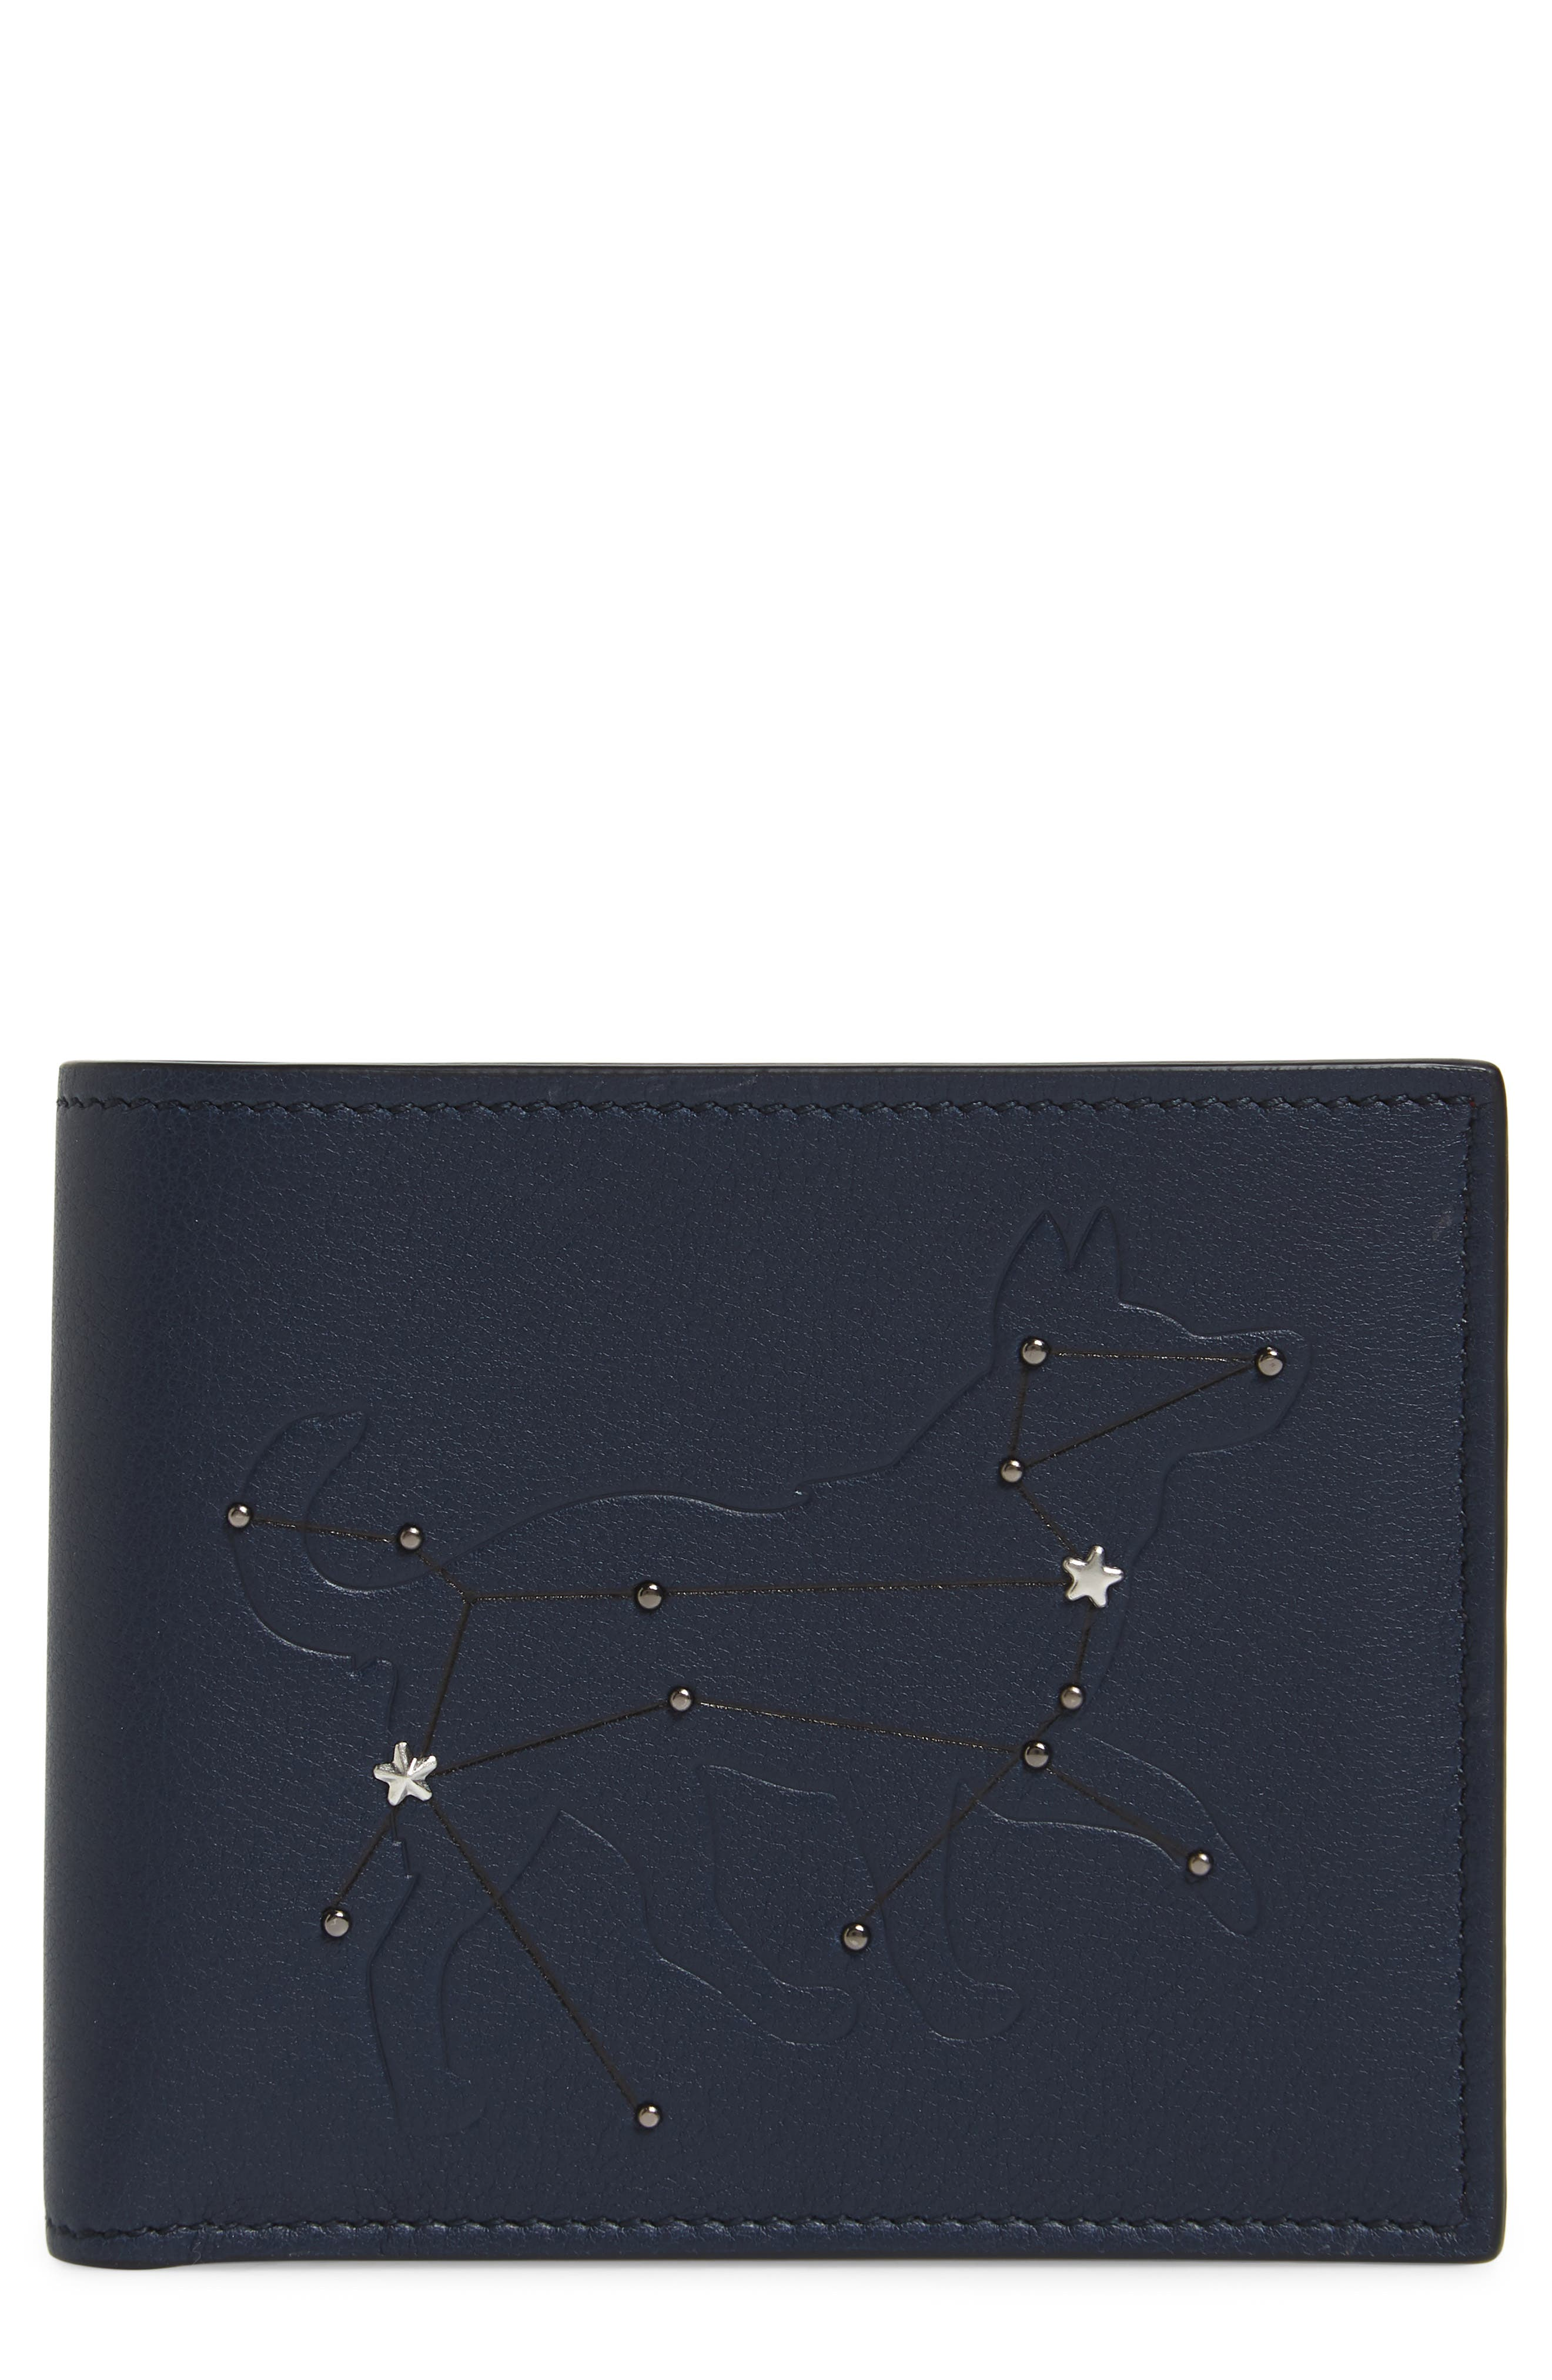 Main Image - Salvatore Ferragamo Carne Chinese New Year Studded Leather Wallet